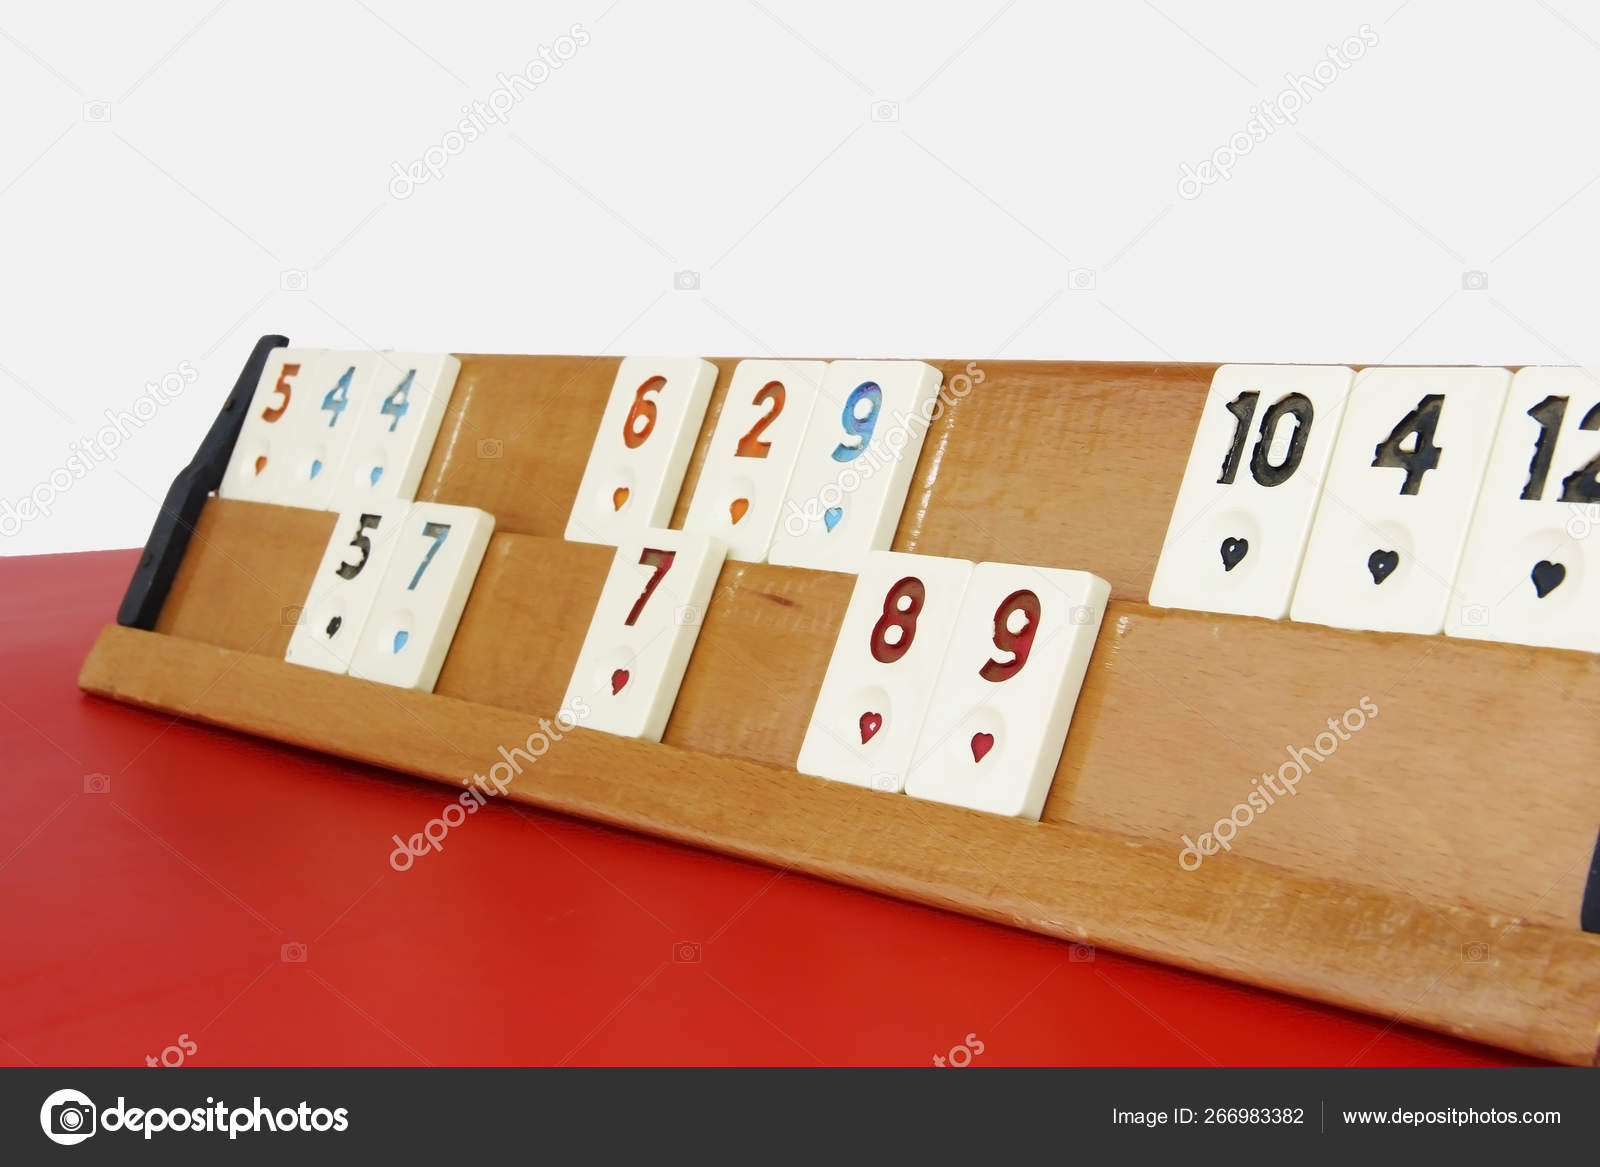 Traditional Turkish Game Okey Plastic Chips With Numbers On A